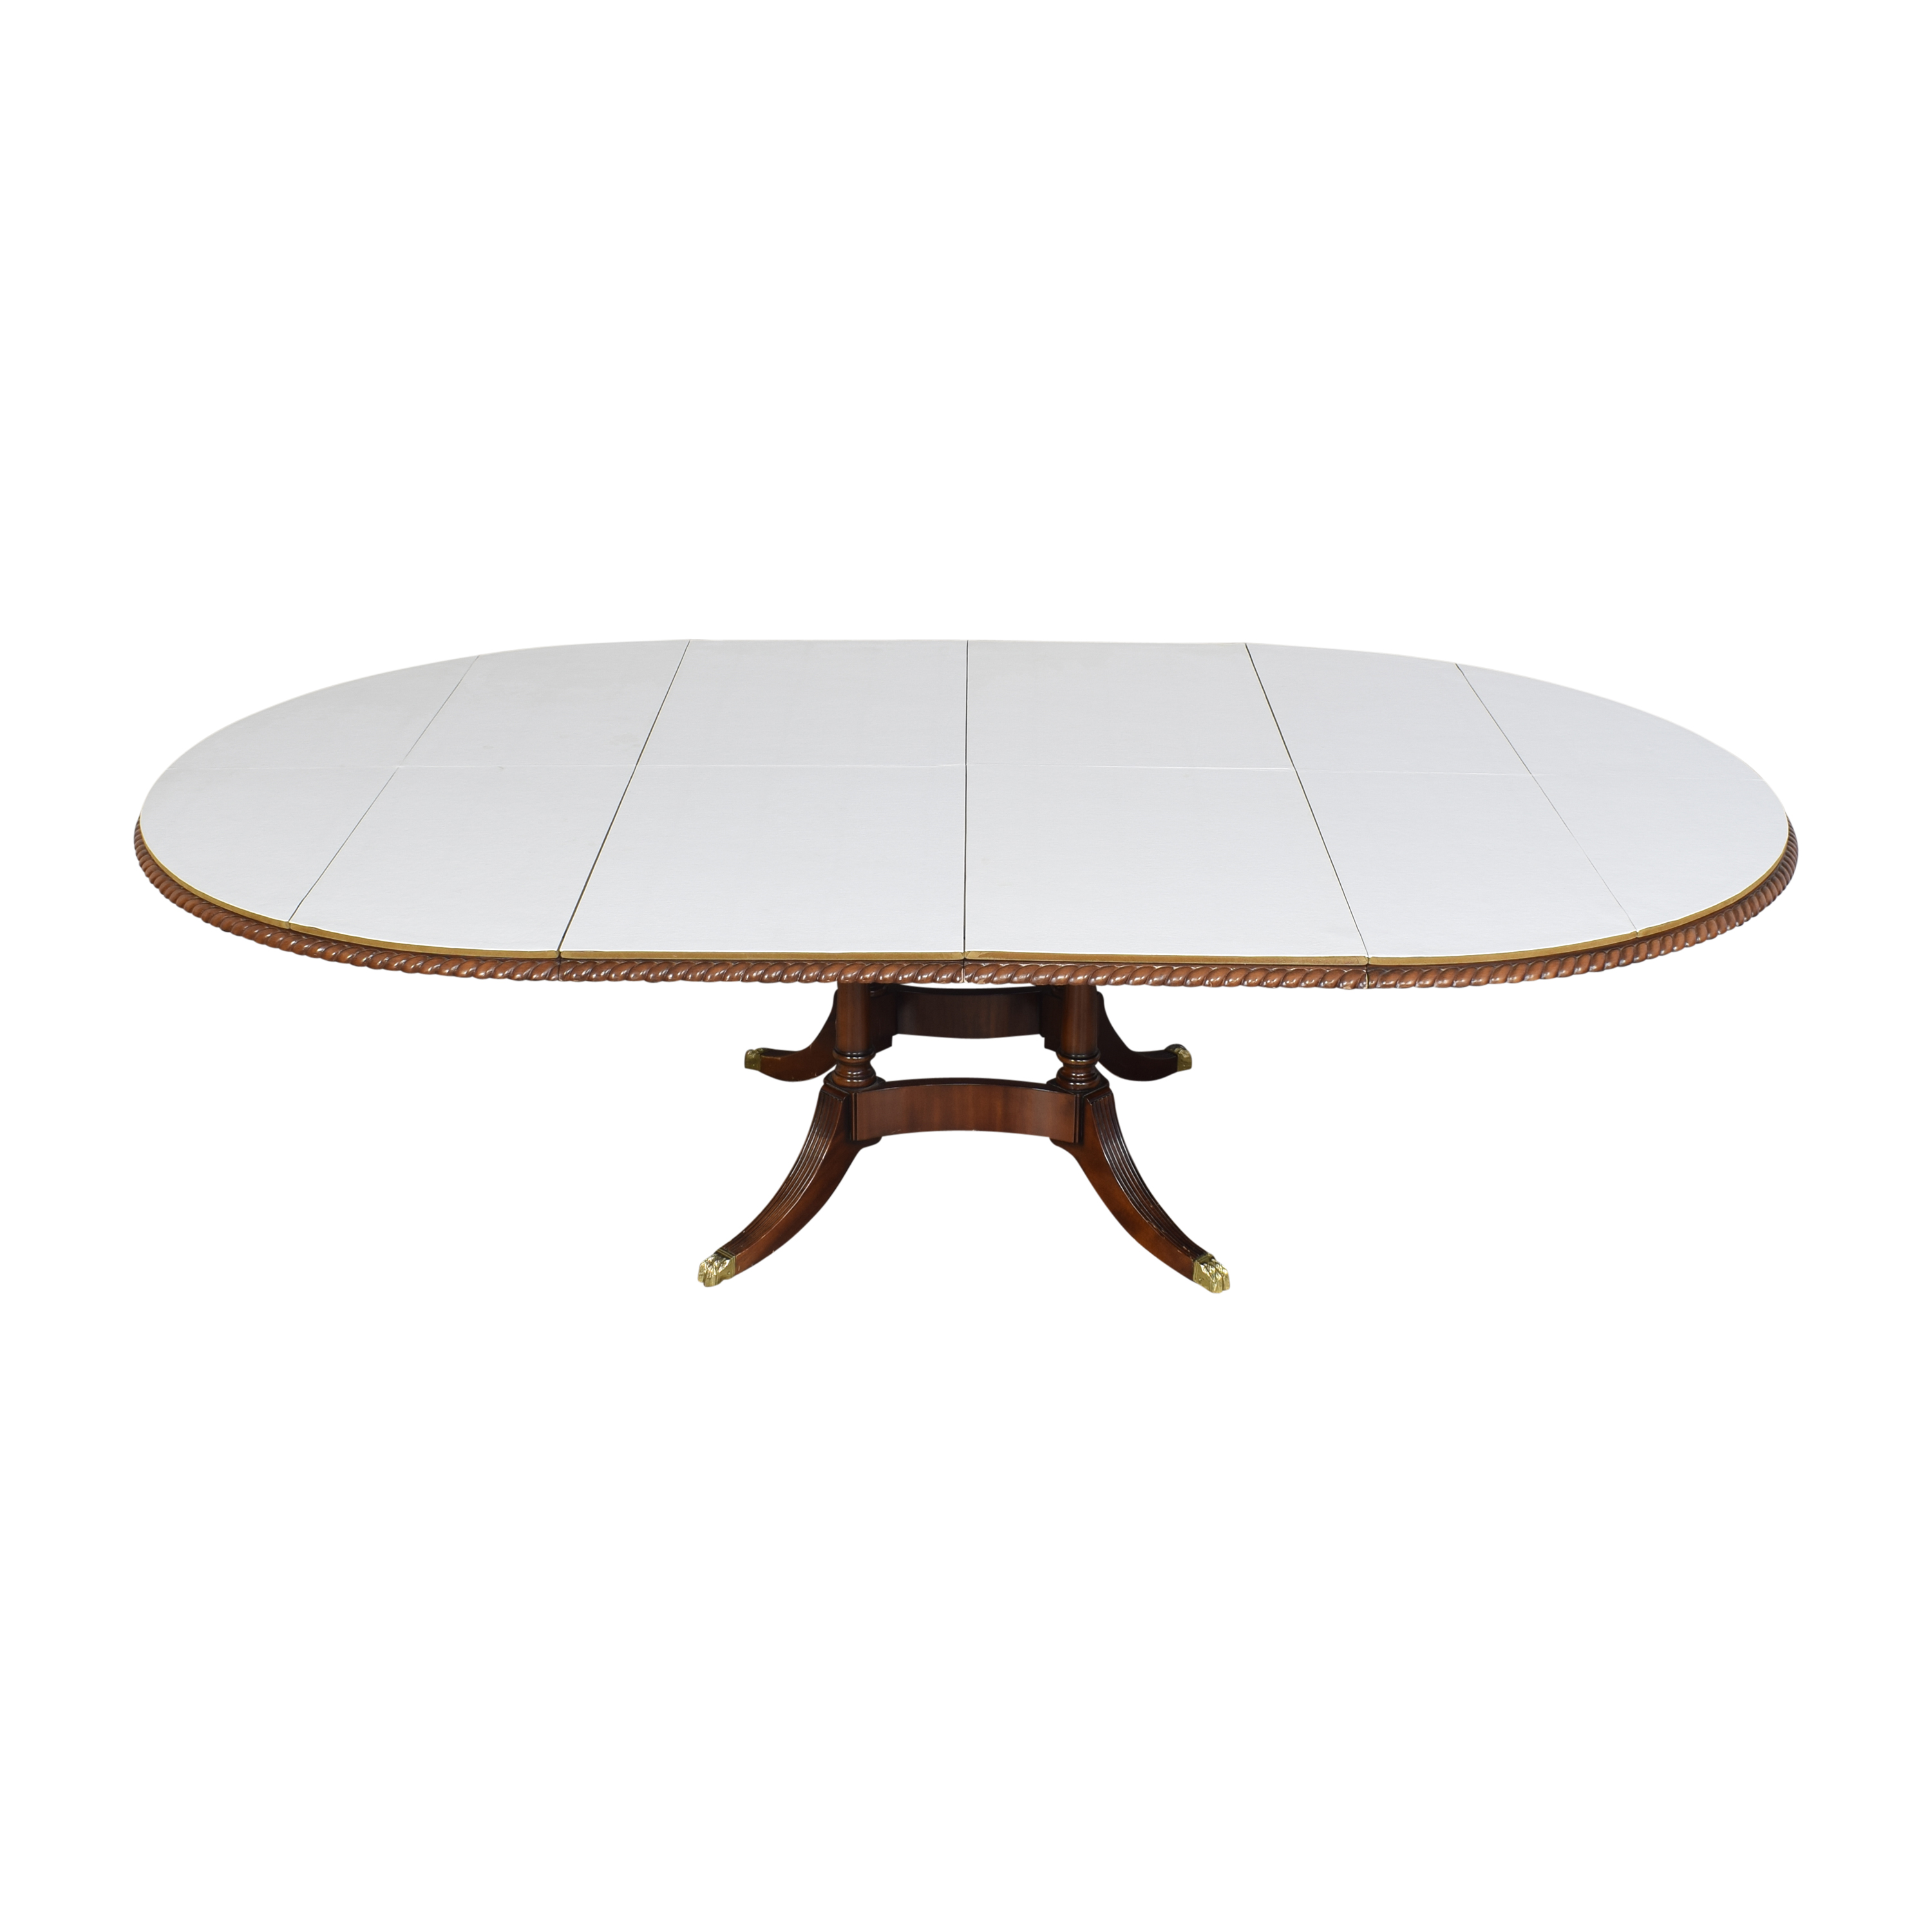 Walter of Wabash Walter of Wabash Extendable Dining Table for sale